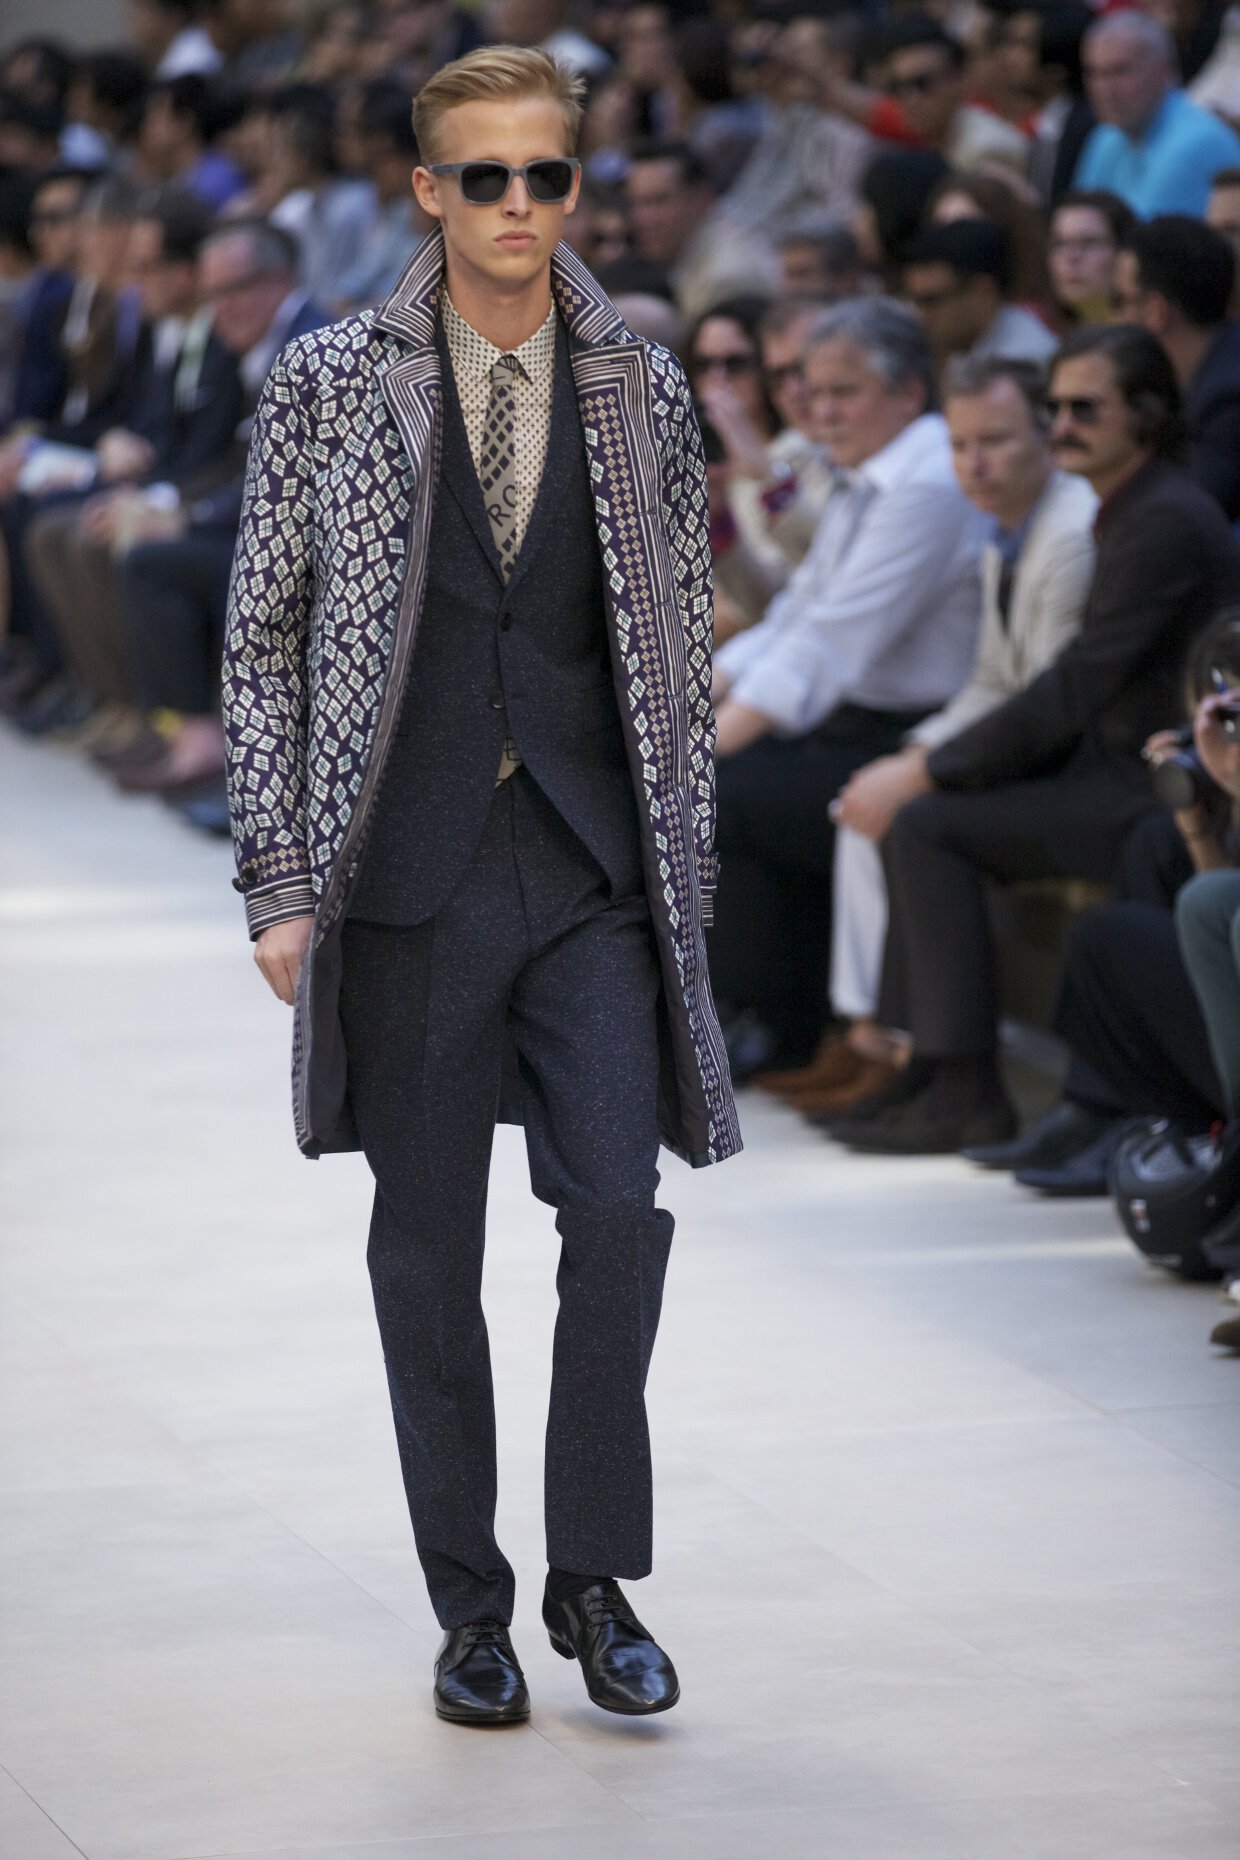 Burberry Prorsum Spring Summer 2013 Men Collection Milano Fashion Week Fashion Show